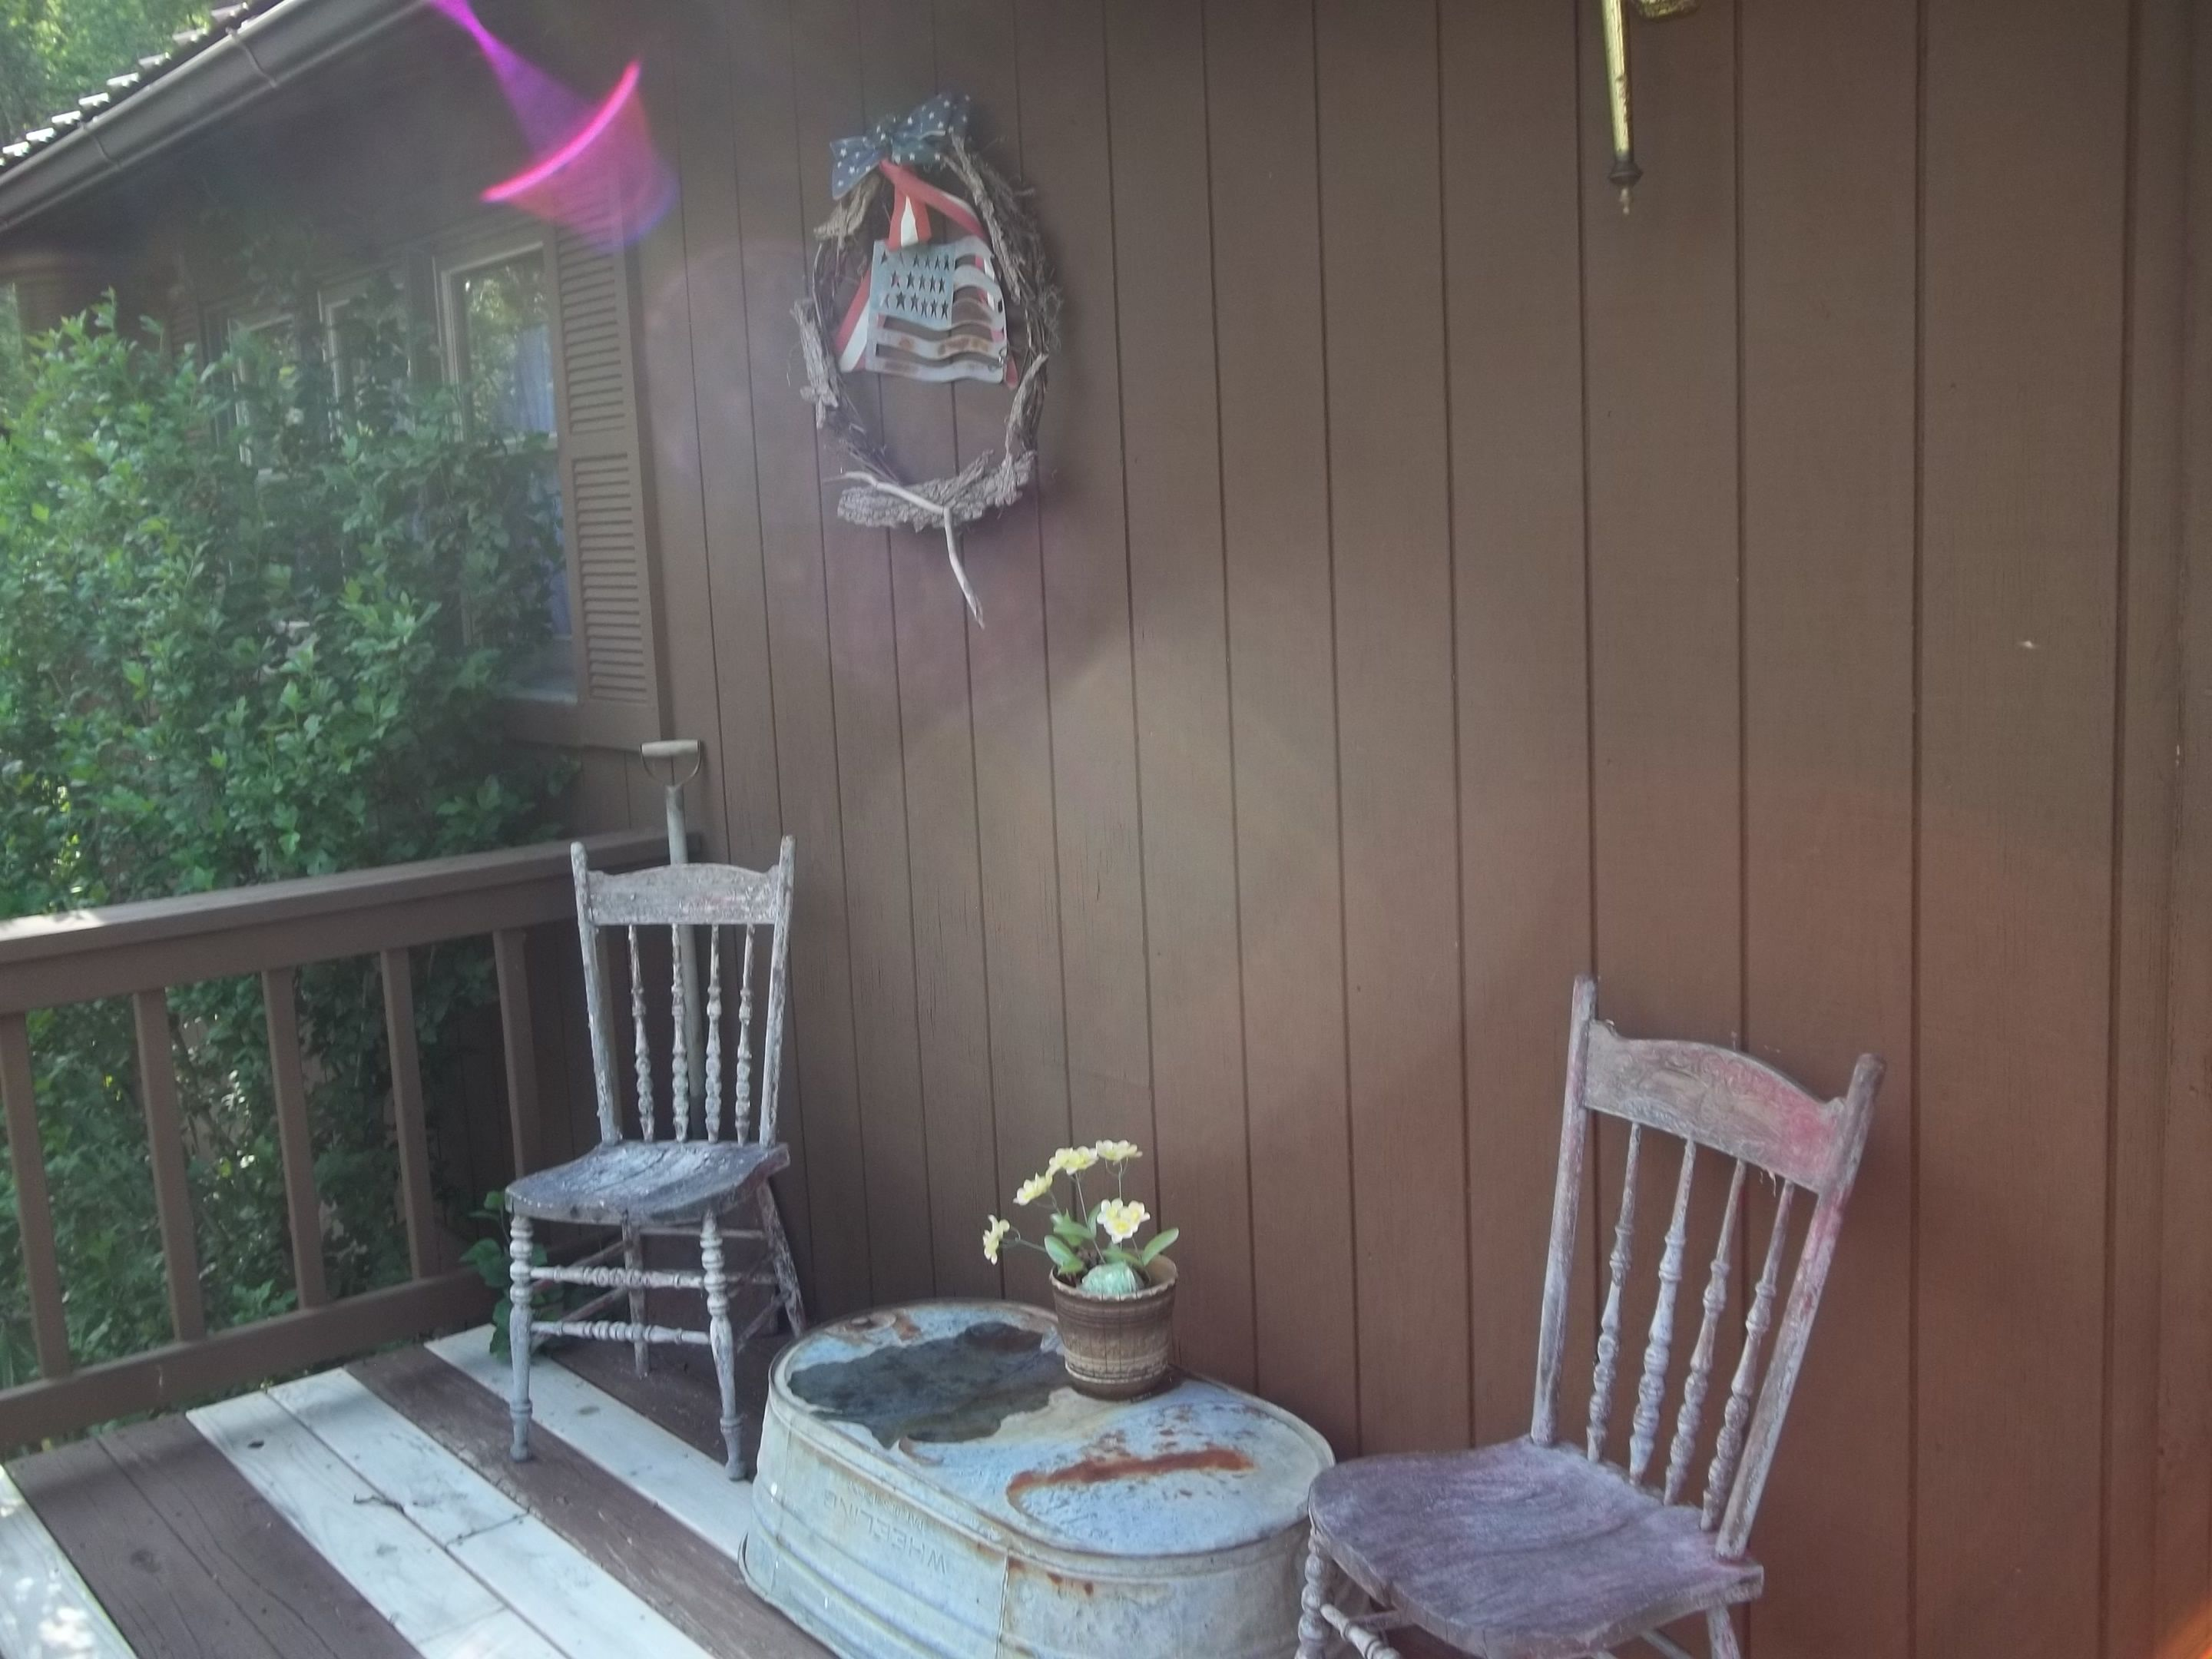 on my front deck have replaced some boards but not yet stained